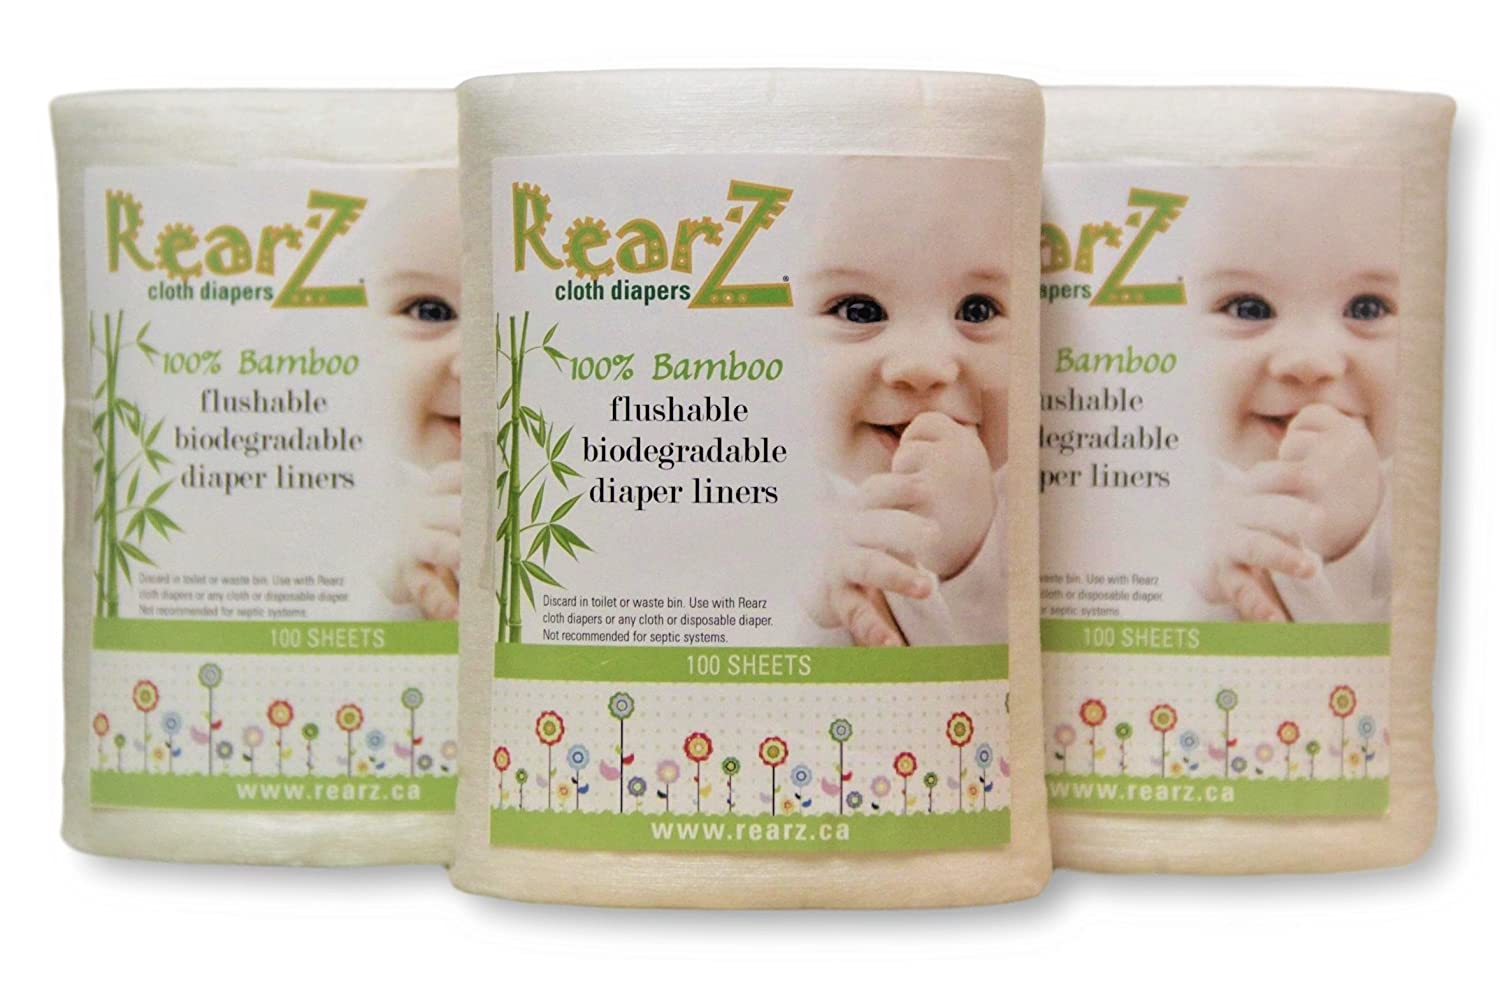 Rearz - All Natural, 100% Bamboo Diaper Liners - 100 Sheets (2 Pack)